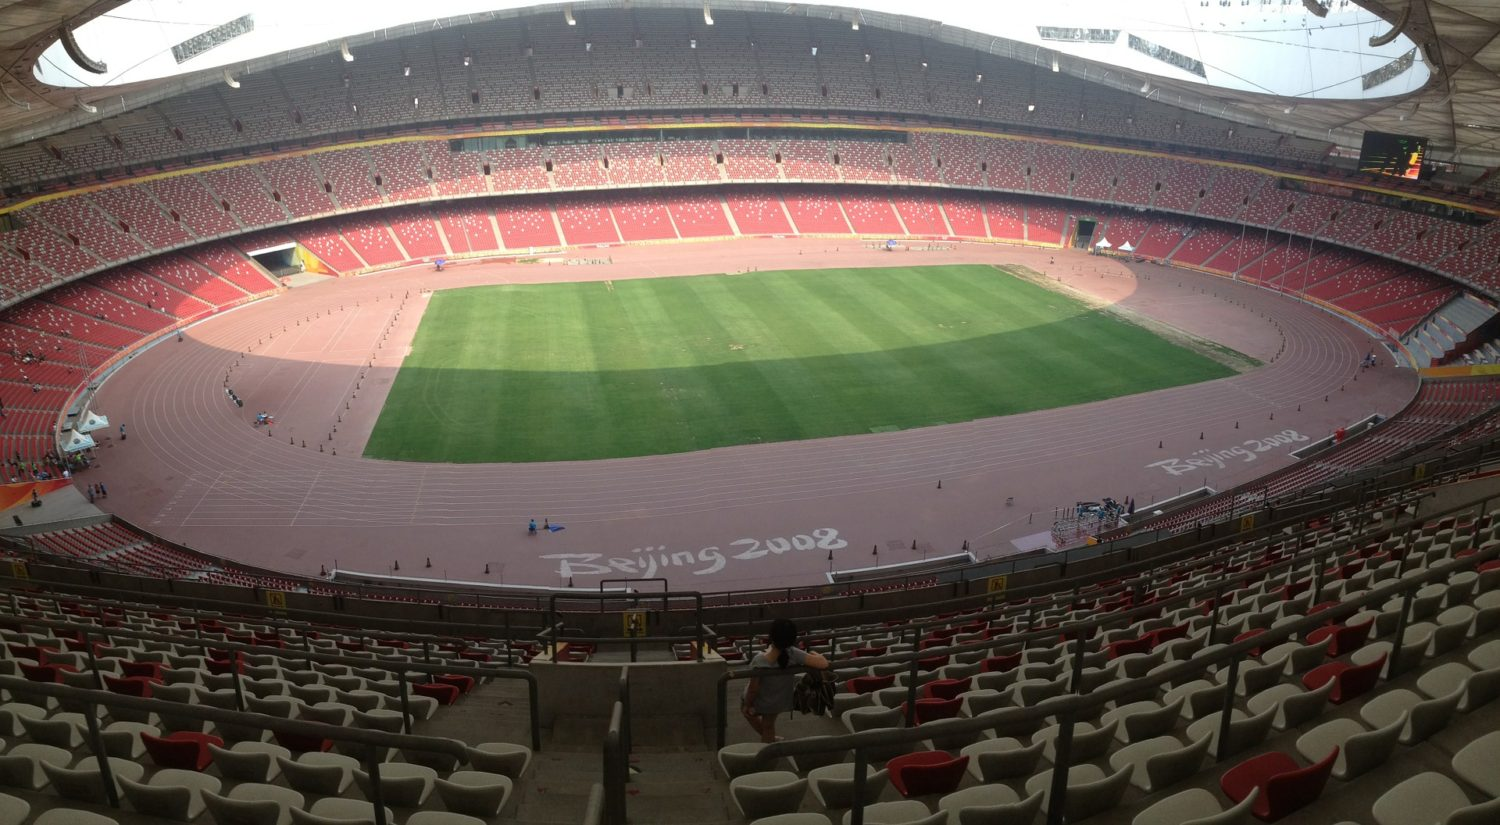 Inside the Bird's Nest Stadium in Beijing, China